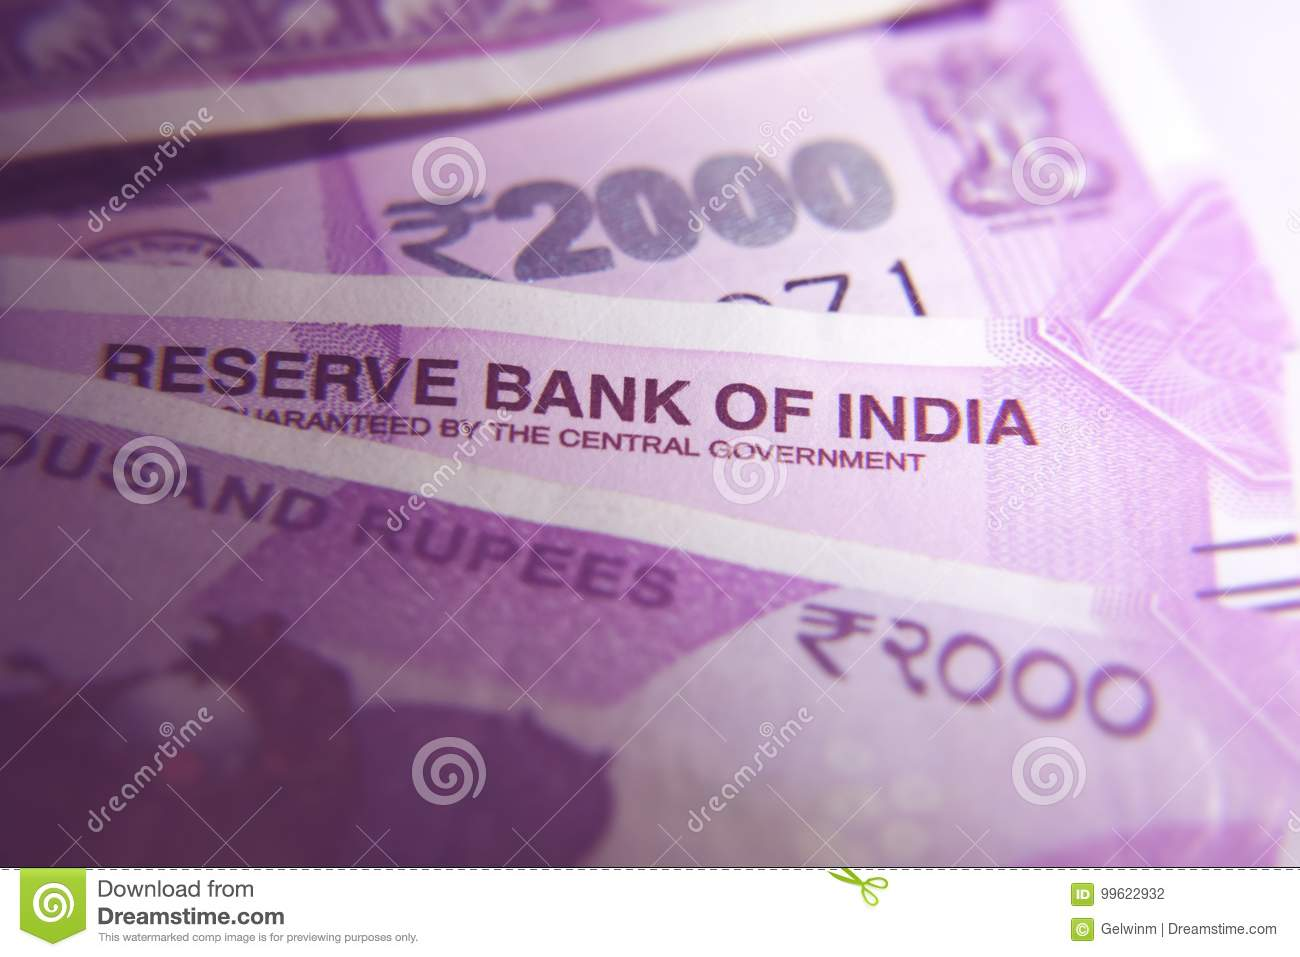 New Indian 2000 rupee notes